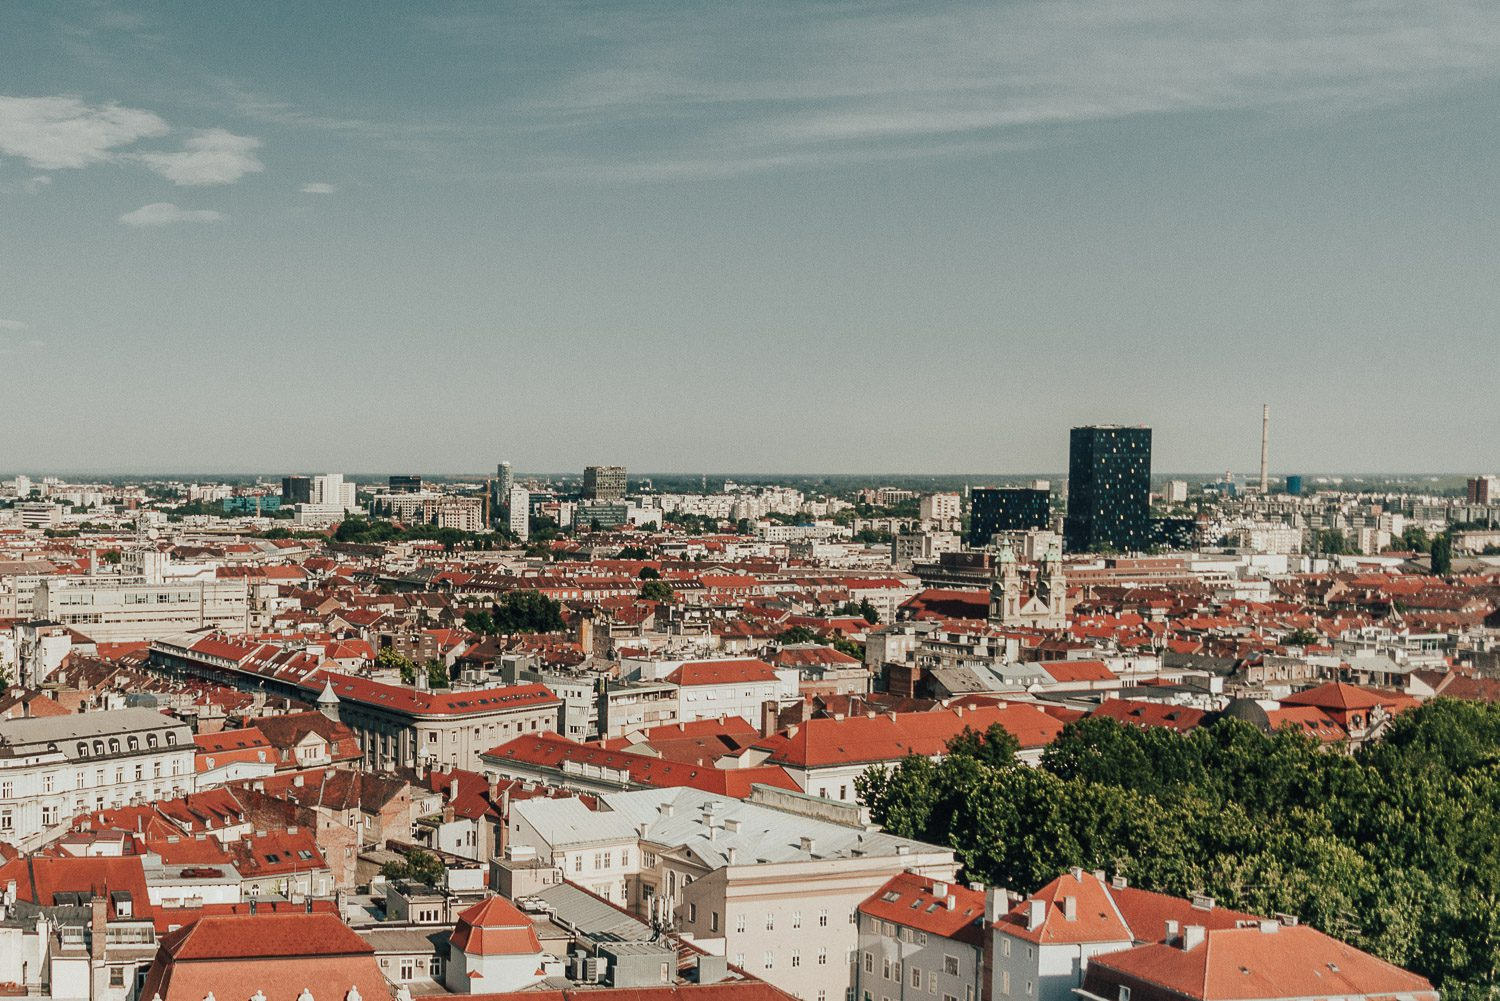 View from Zagreb 360 Eye Observation Deck